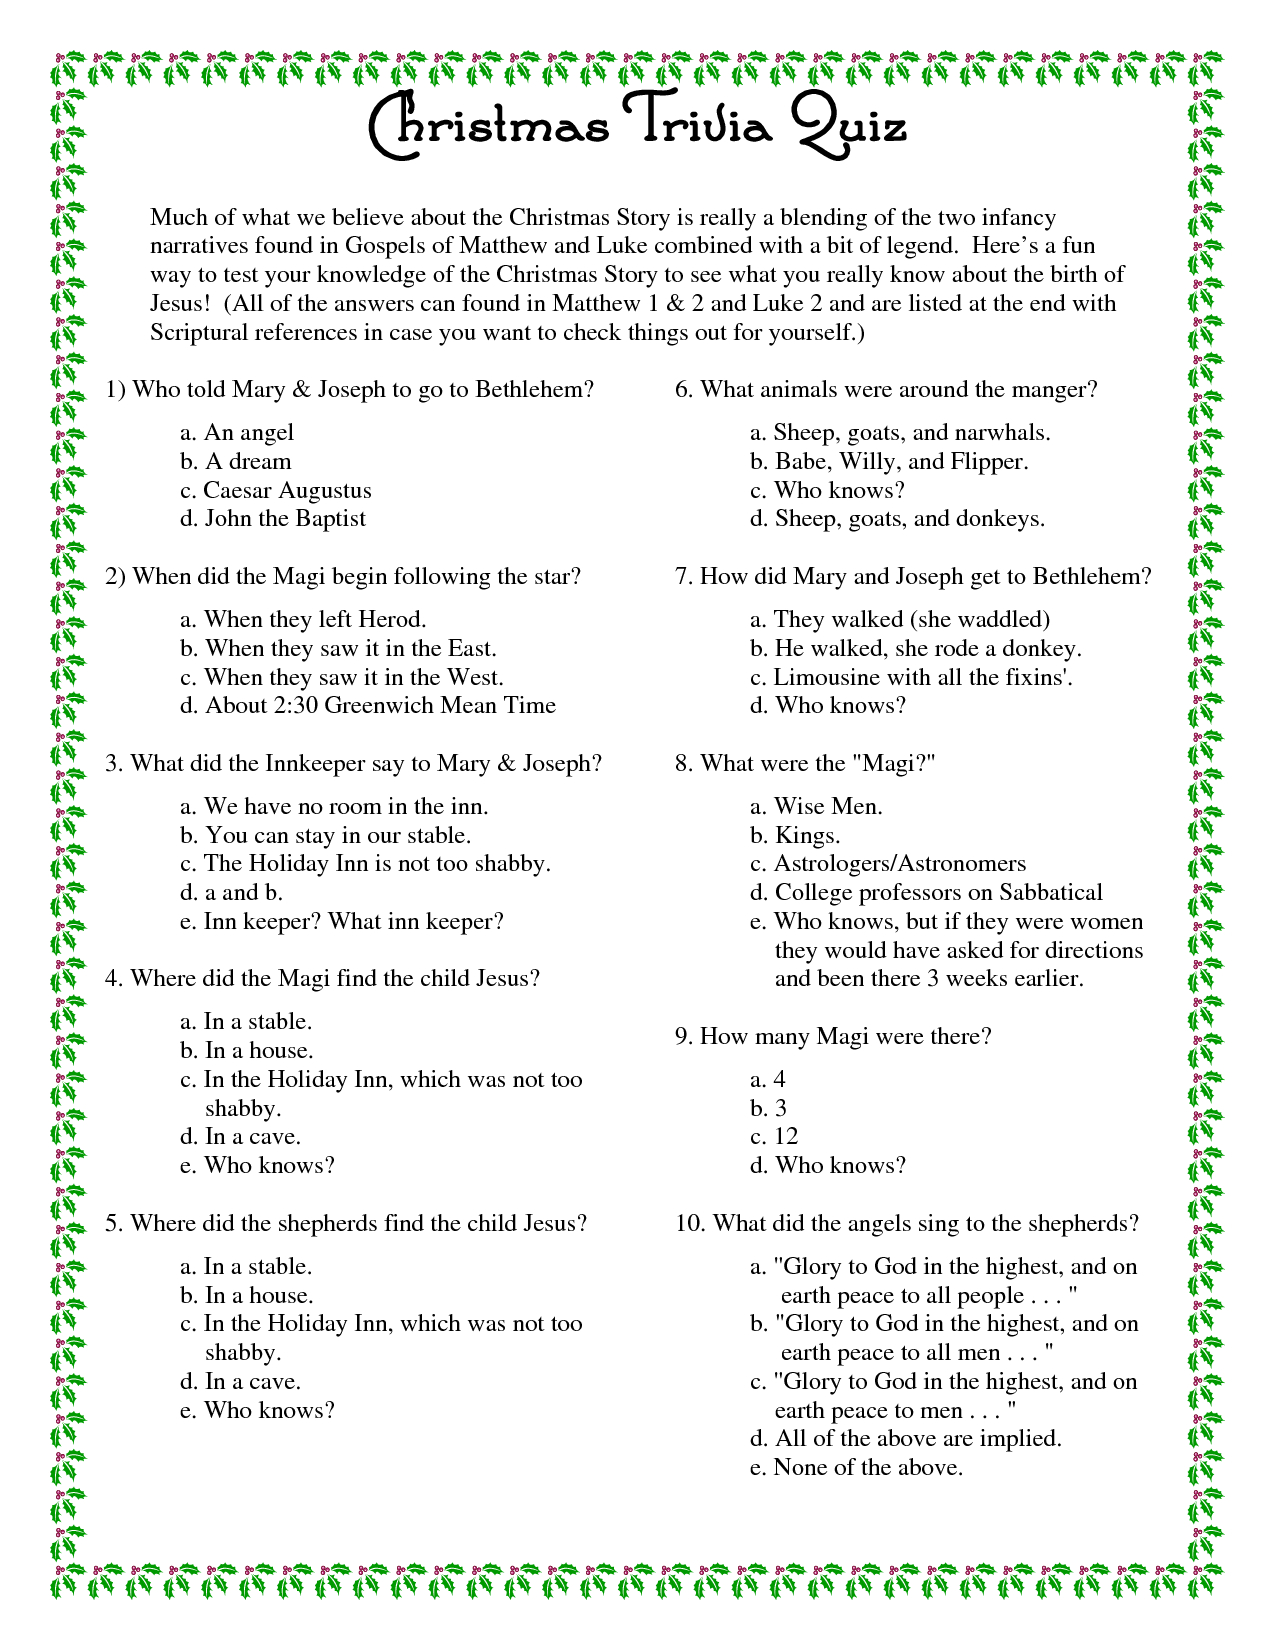 Free Printable Bible Trivia Questions And Answers For Adults